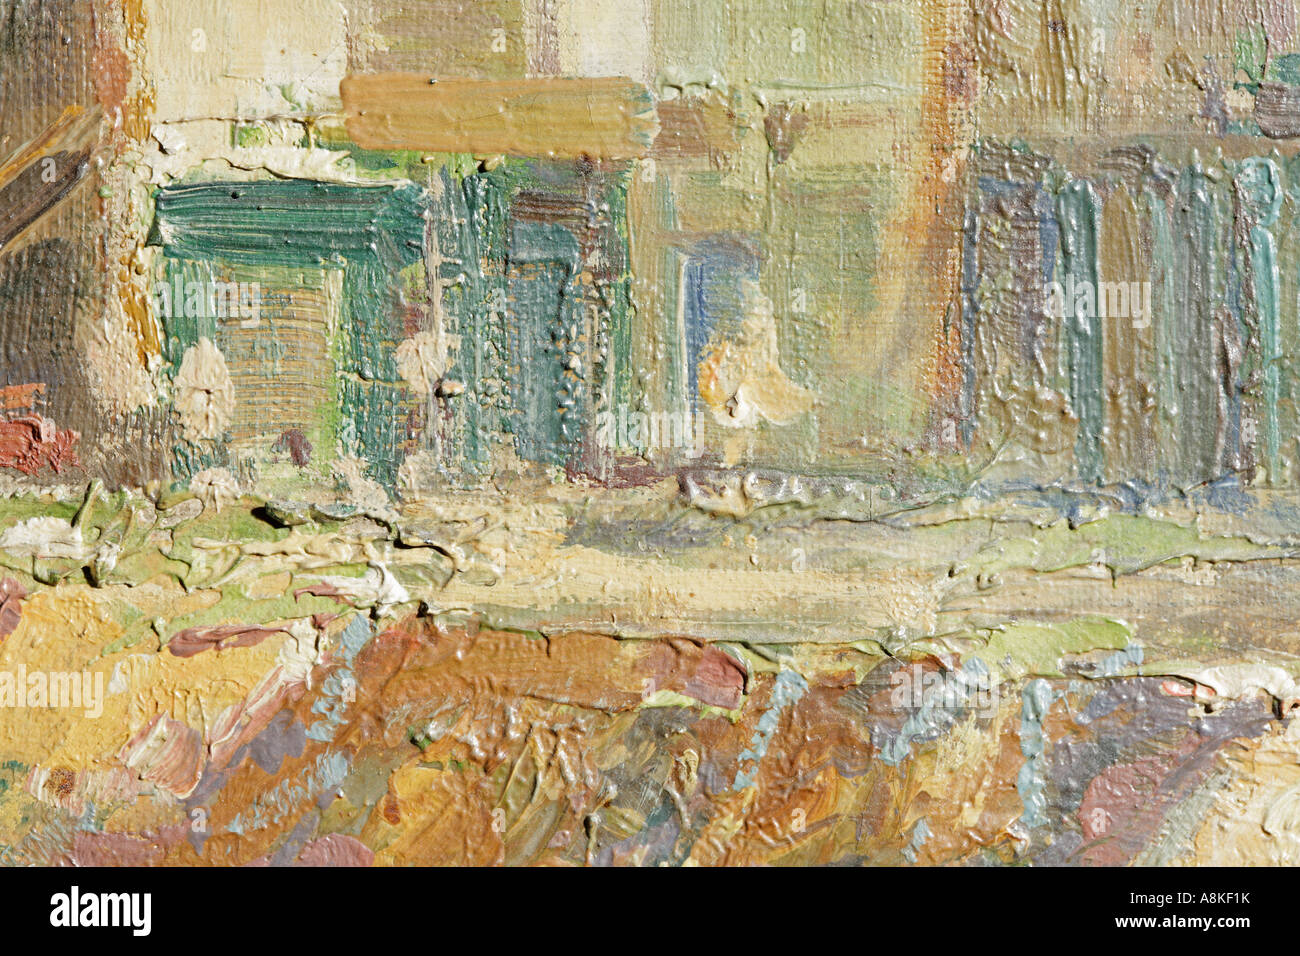 Detail of oil painting backgrounds full frame close up - Stock Image